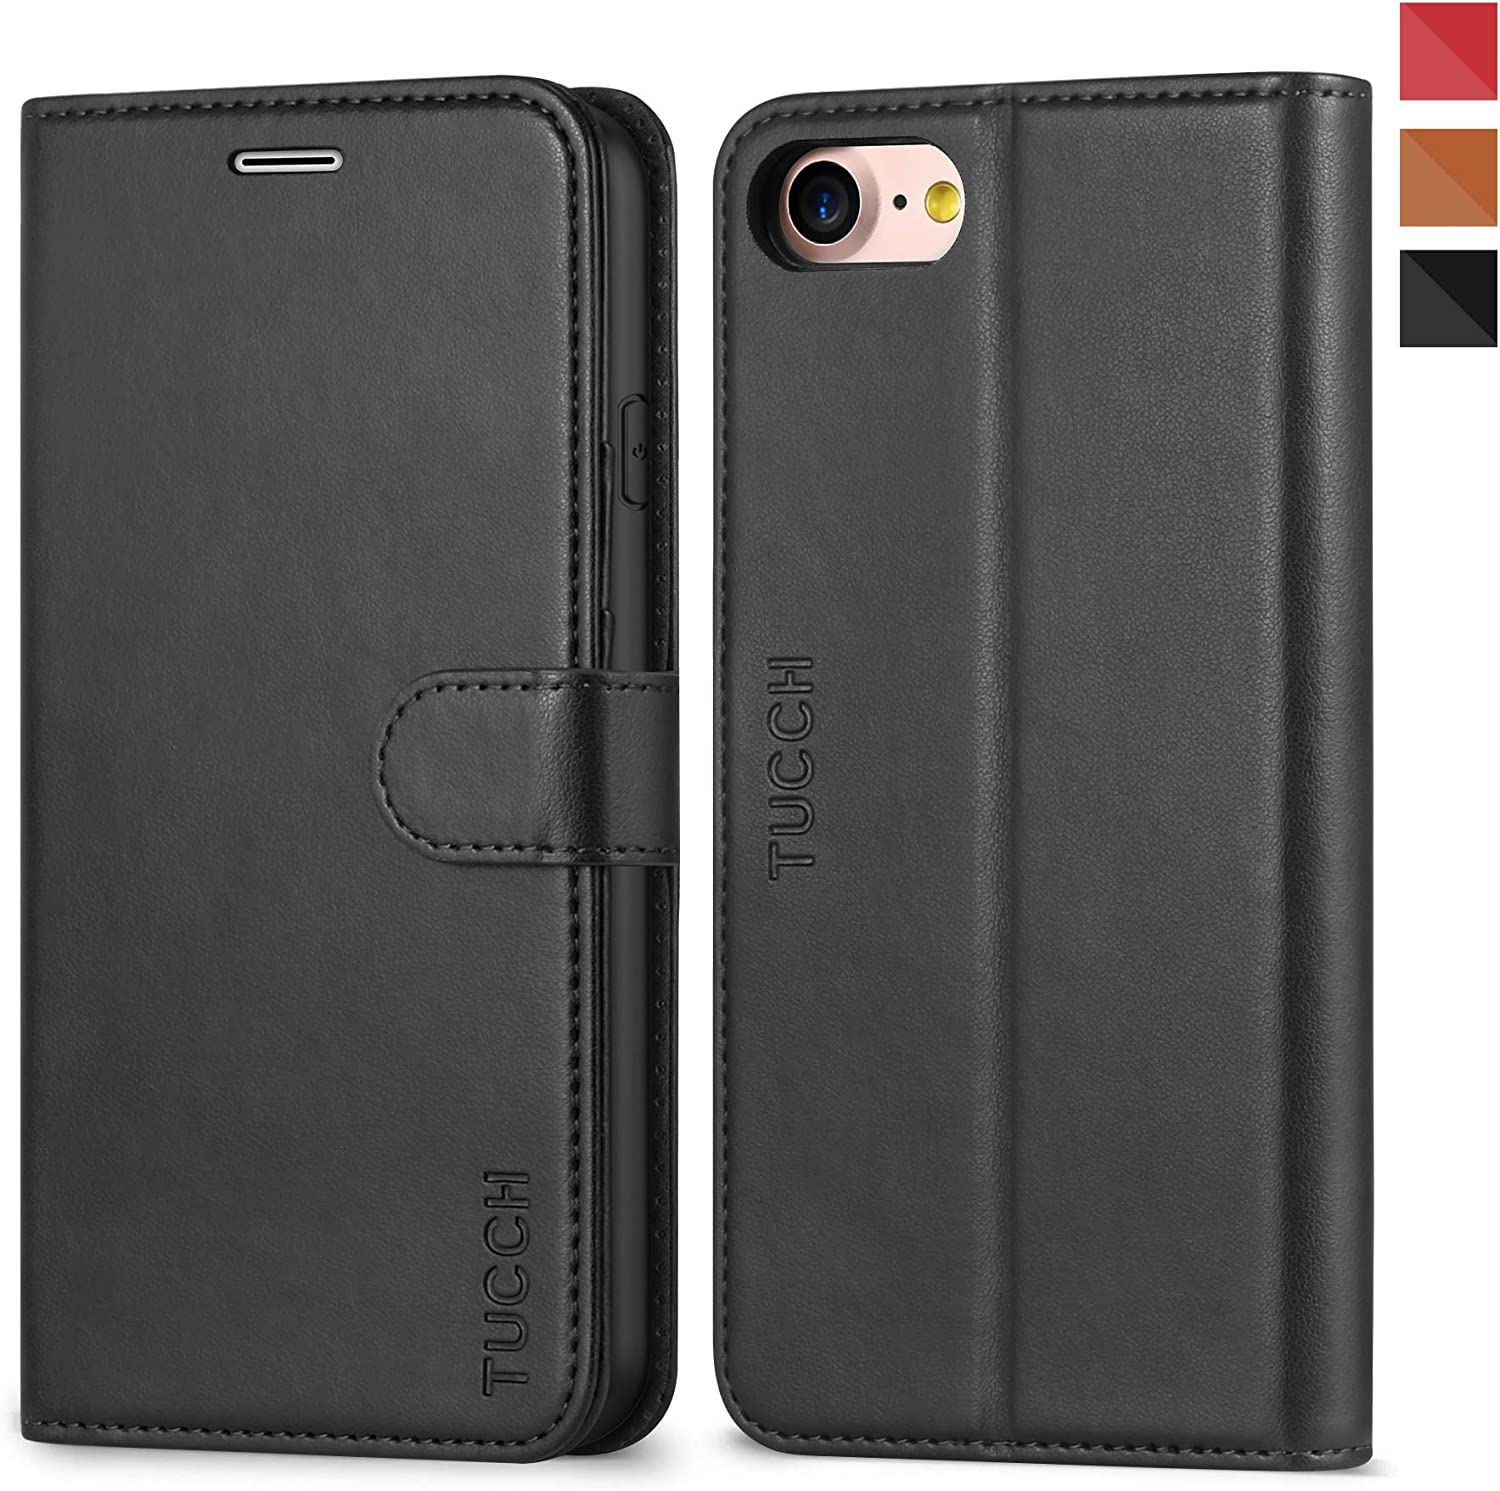 TUCCH iPhone 8 Case, iPhone 7 Wallet Case, Premium PU Leather Flip Folio Wallet Case with Card Slot, Stand Holder and Magnetic Closure [TPU Shockproof Interior Case] Compatible with iPhone 7/8, Black